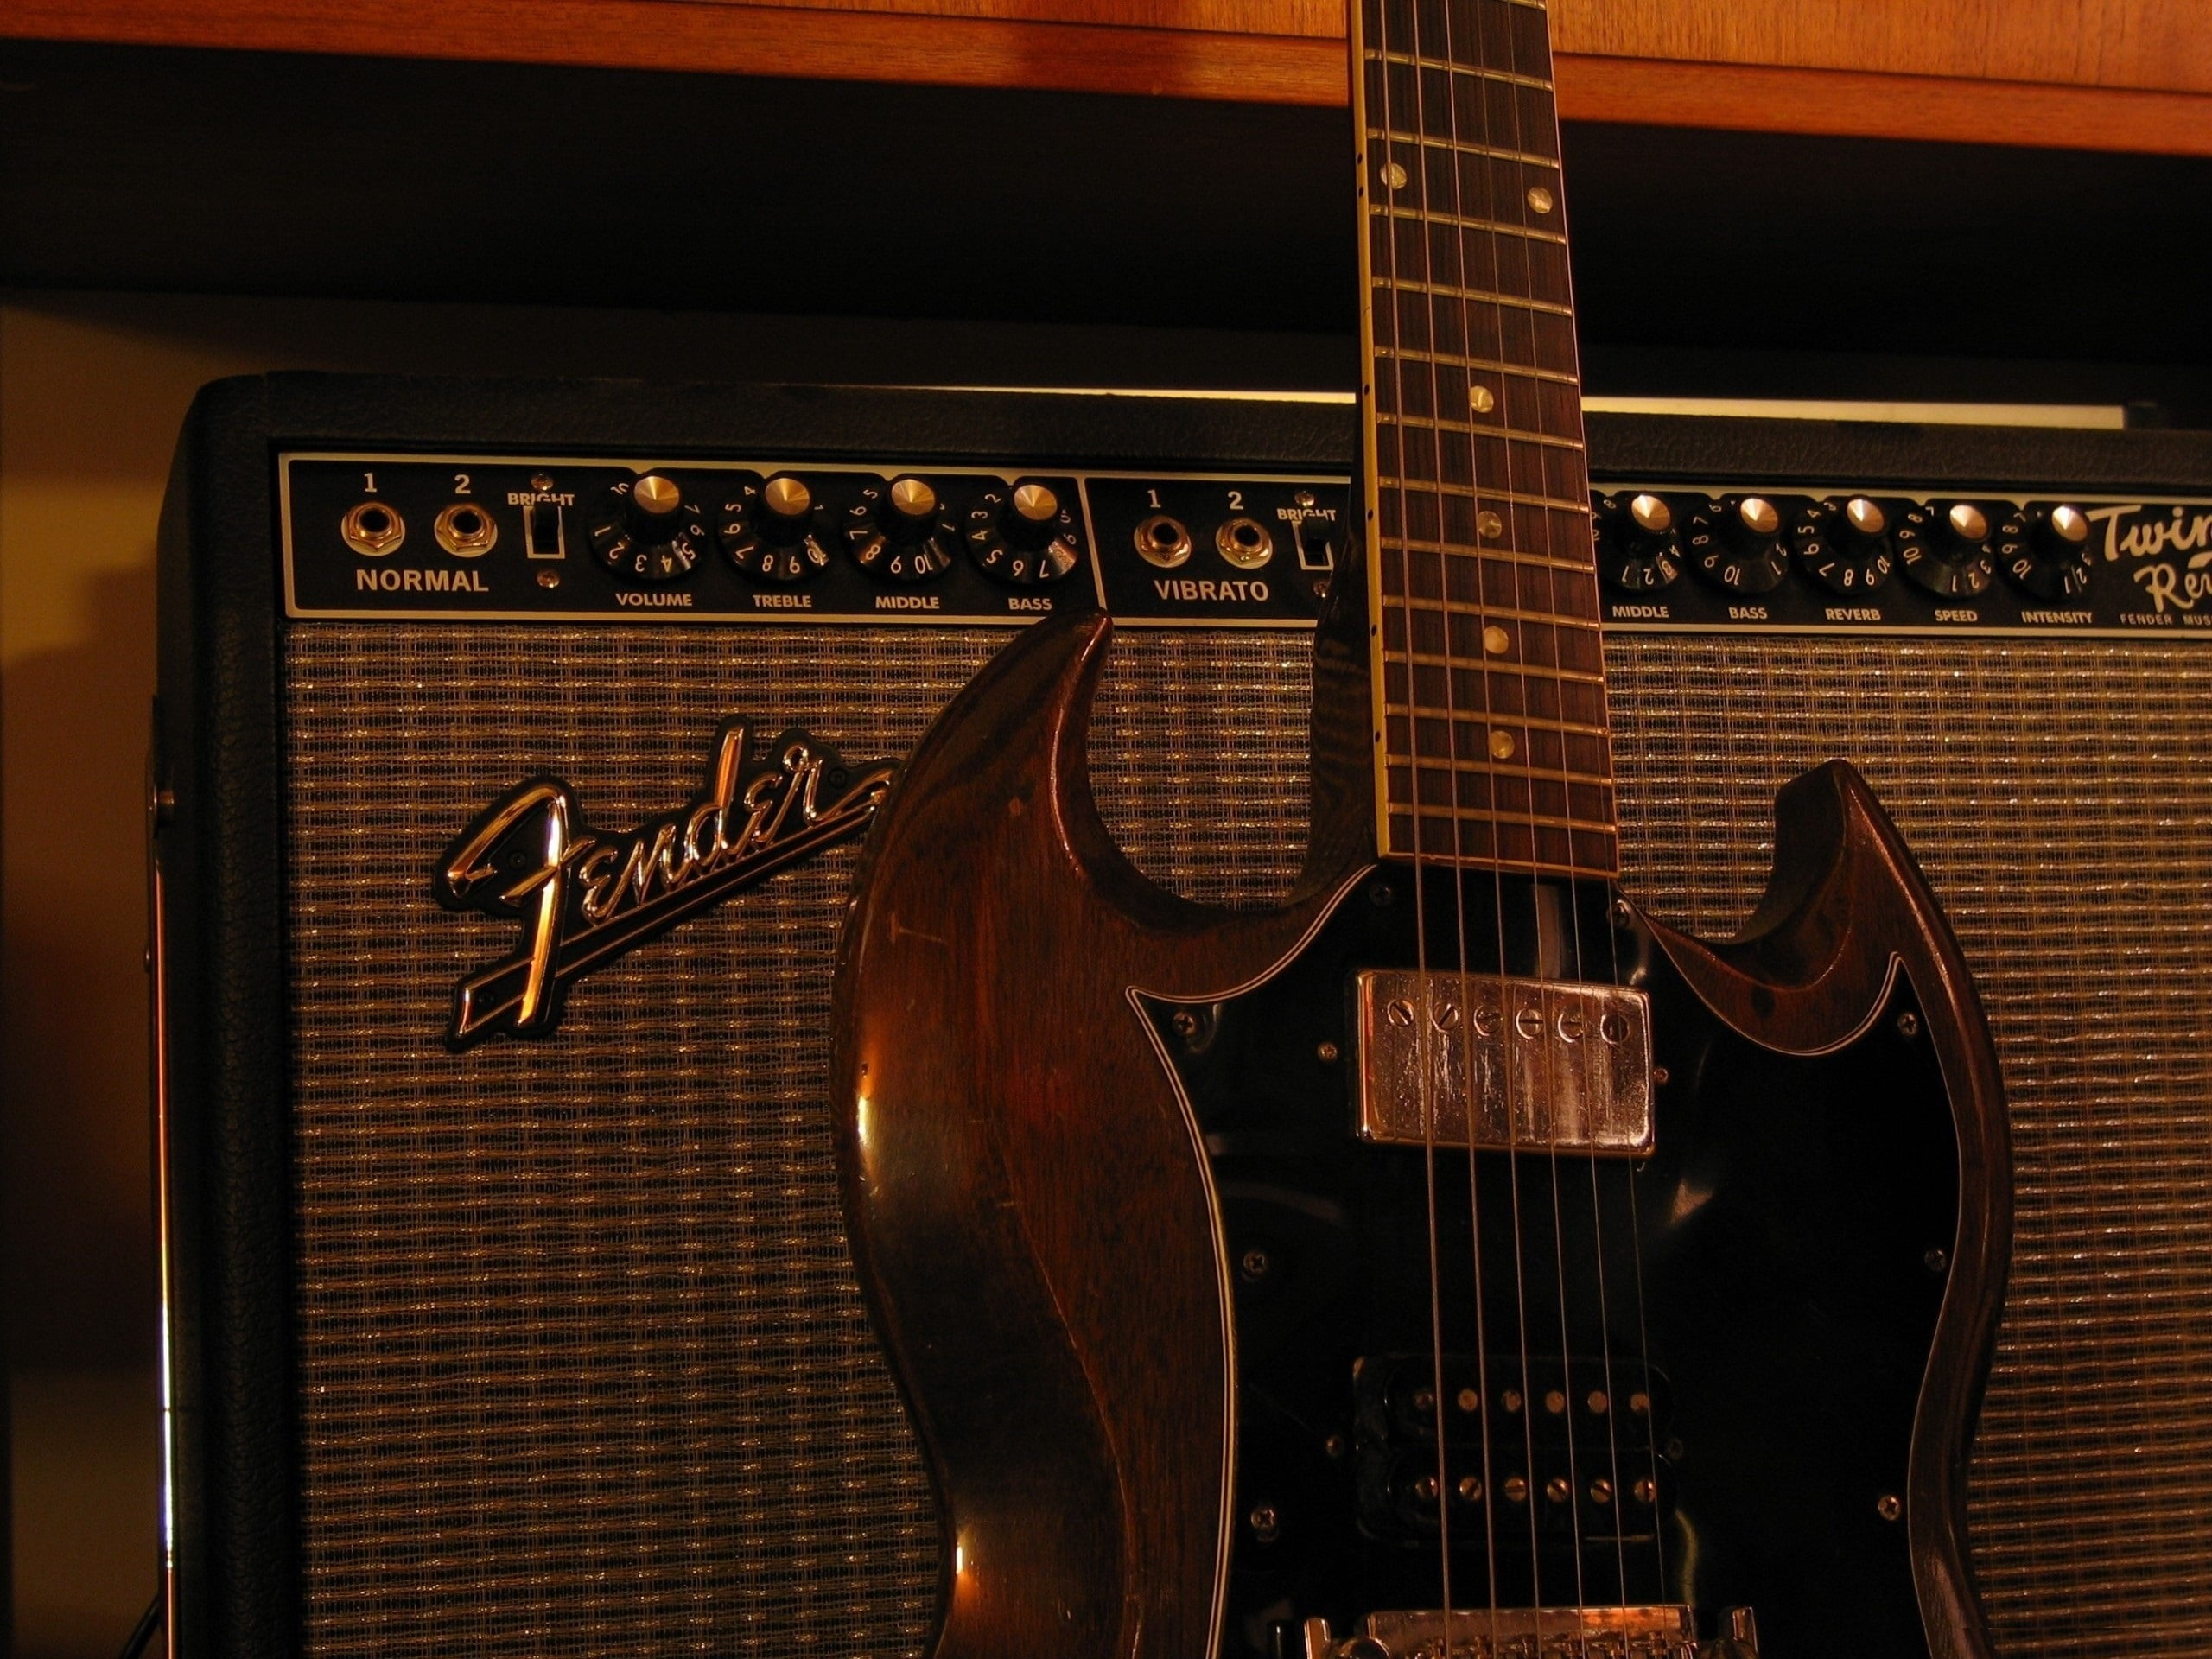 Guitar Amp Hd Wallpapers Kolpaper Awesome Free Hd Wallpapers